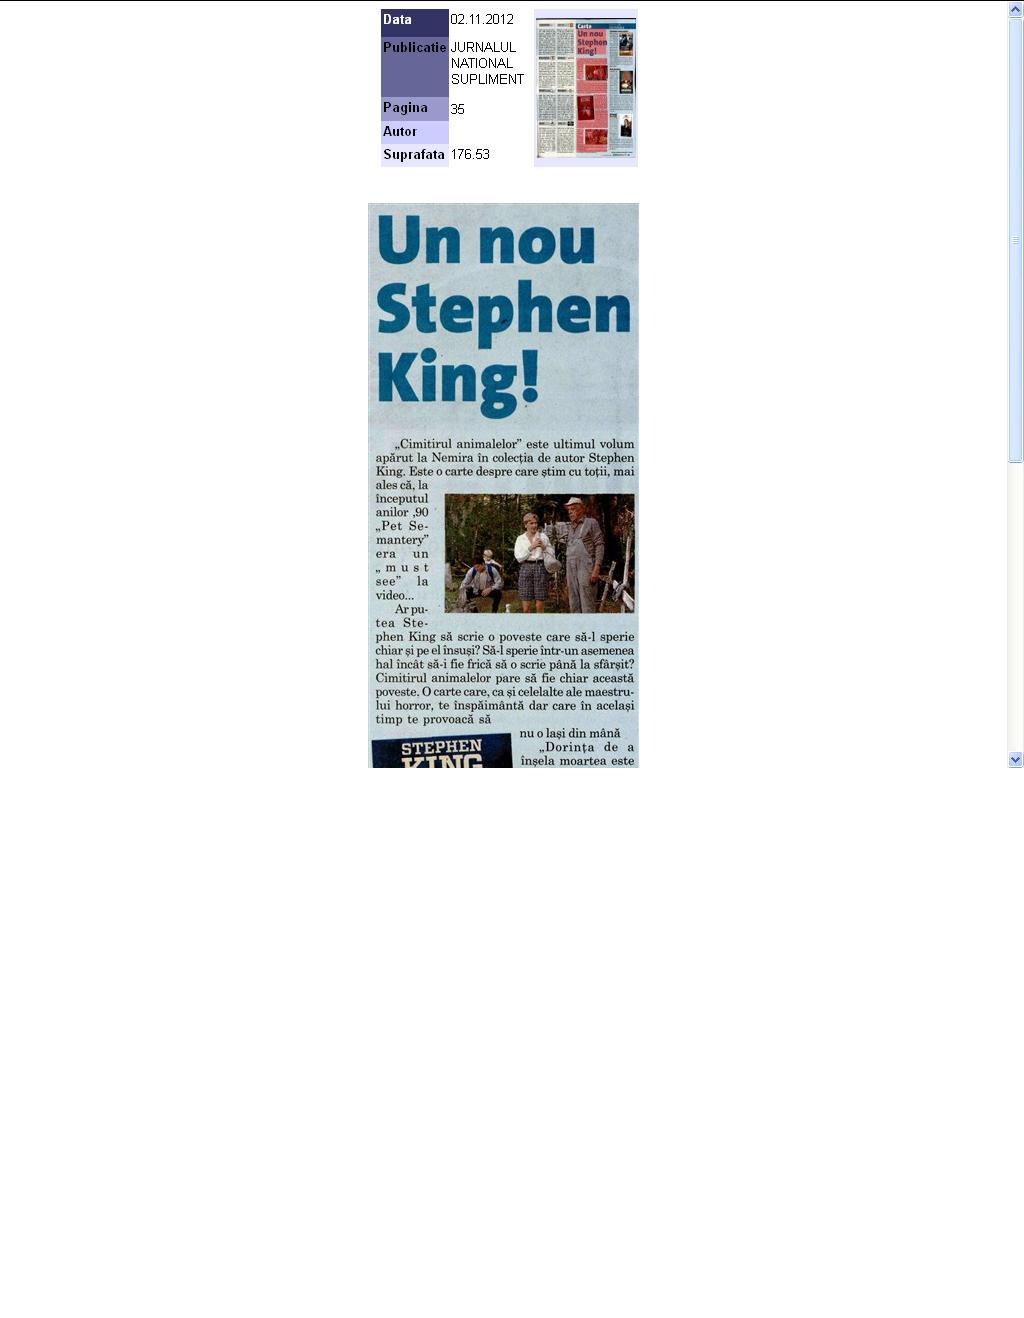 Un nou Stephen King_Jurnalul National